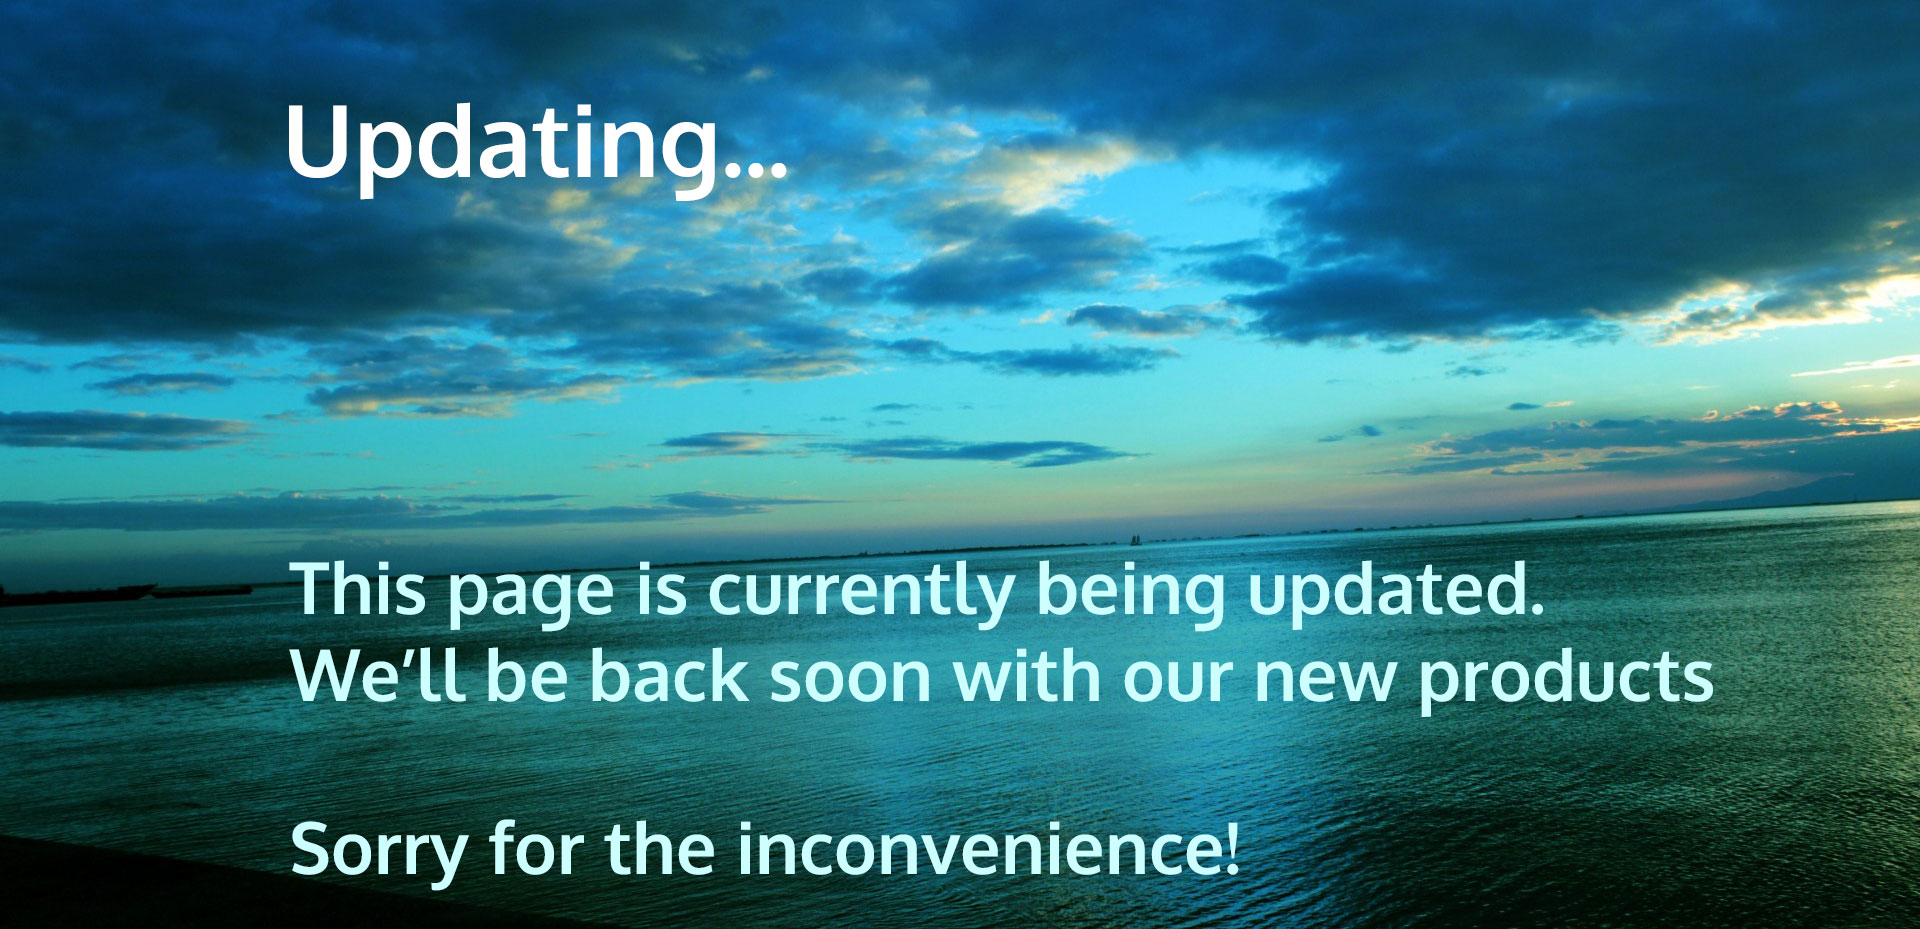 updating_image